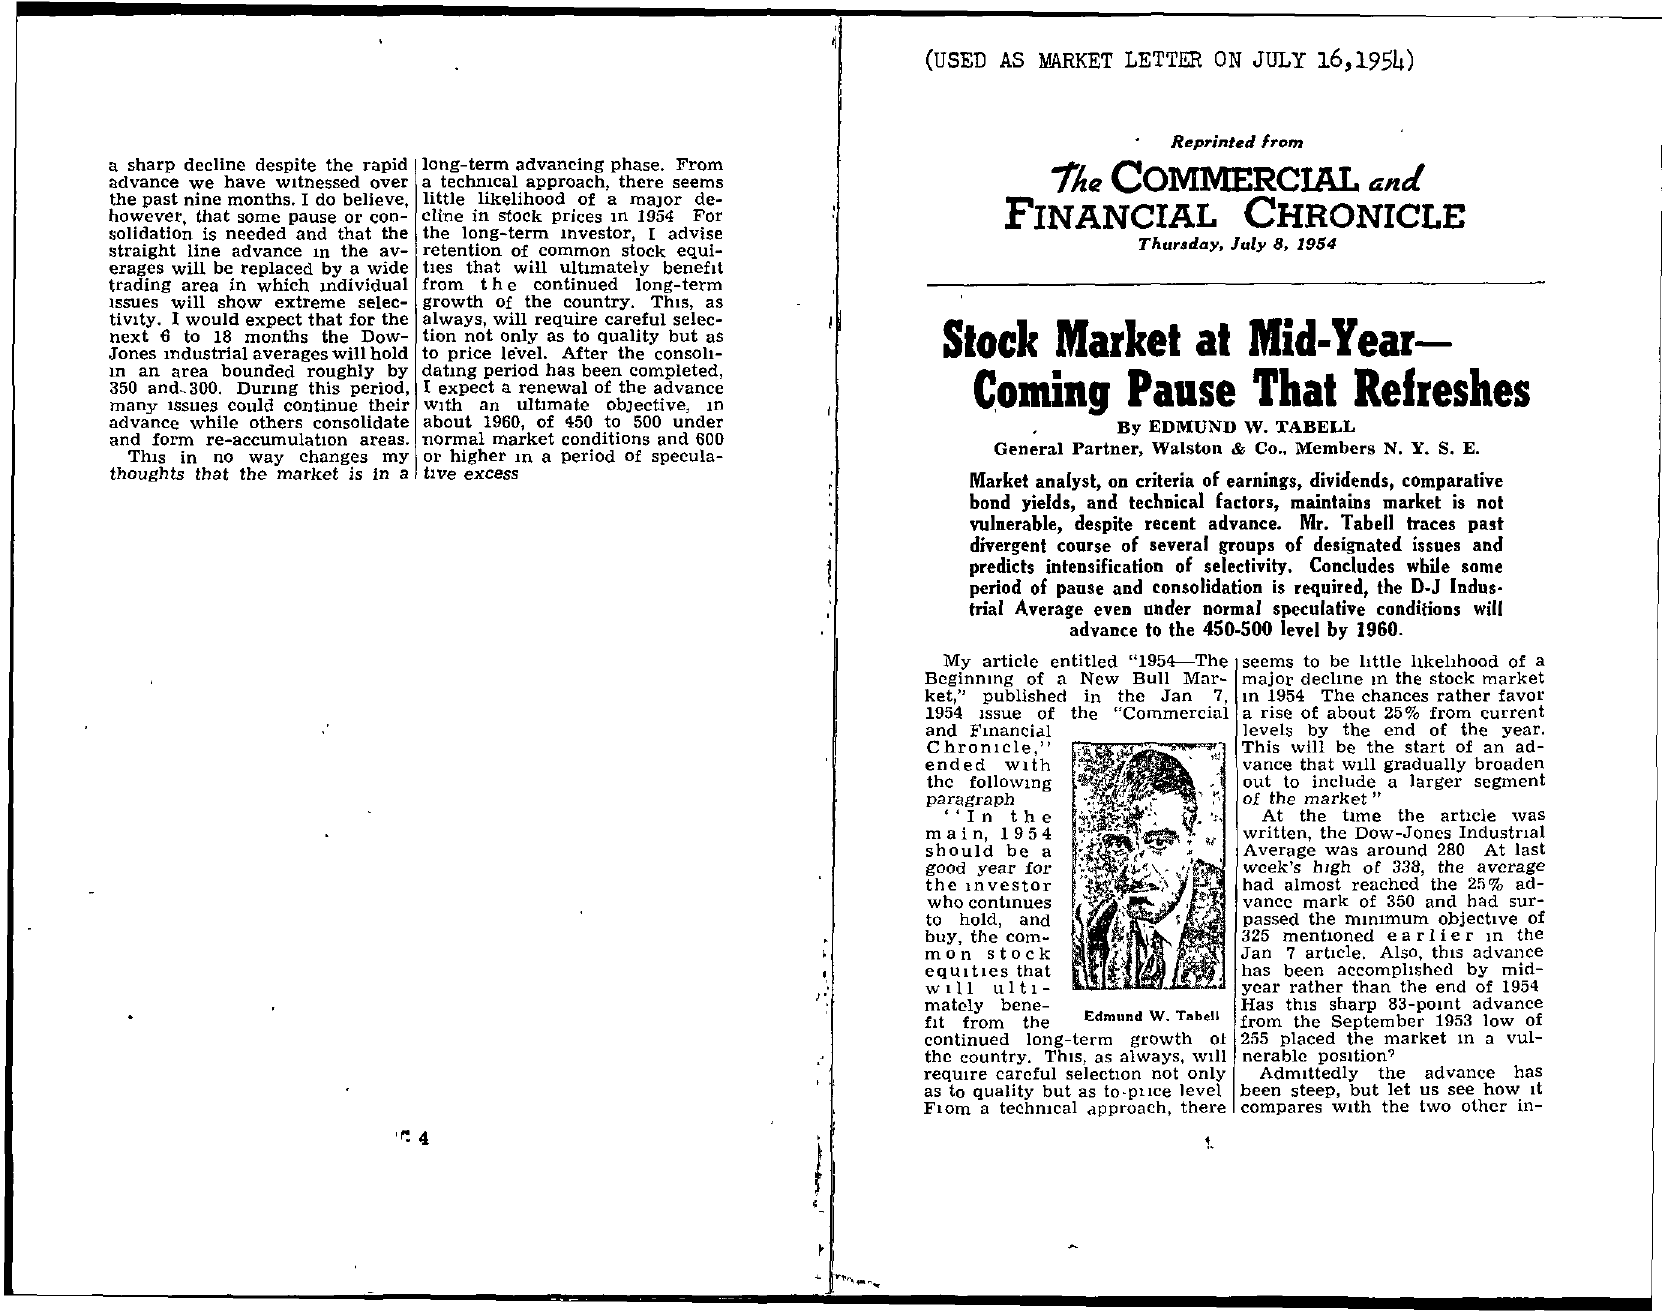 Tabell's Market Letter - July 16, 1954 page 1